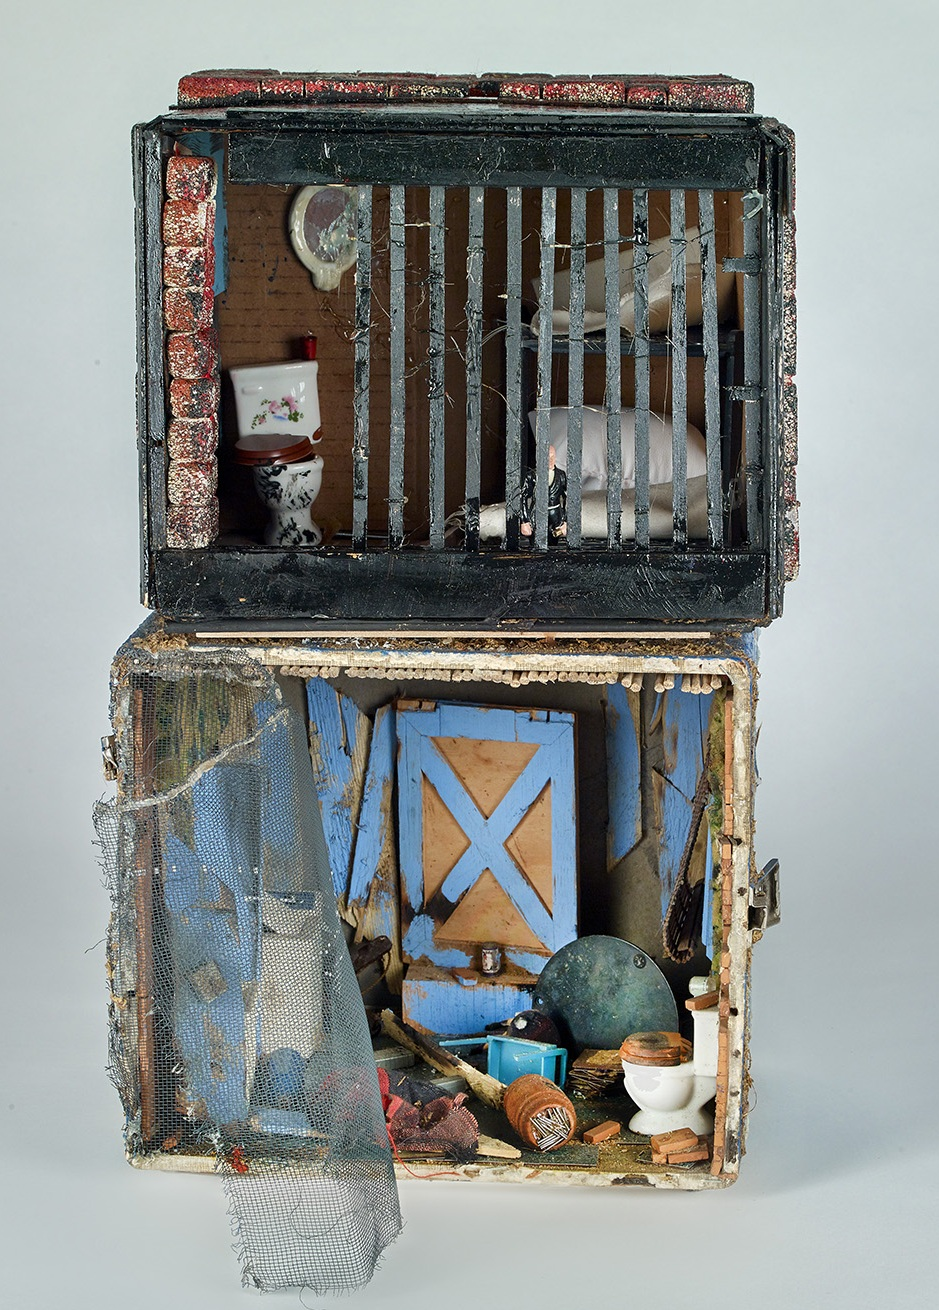 Marvin Tate (American, b. 1959).  J.T.'s Place , 2010. Found objects, 19 x 11 ½ x 14 in. Courtesy of the artist. Photo © John Faier